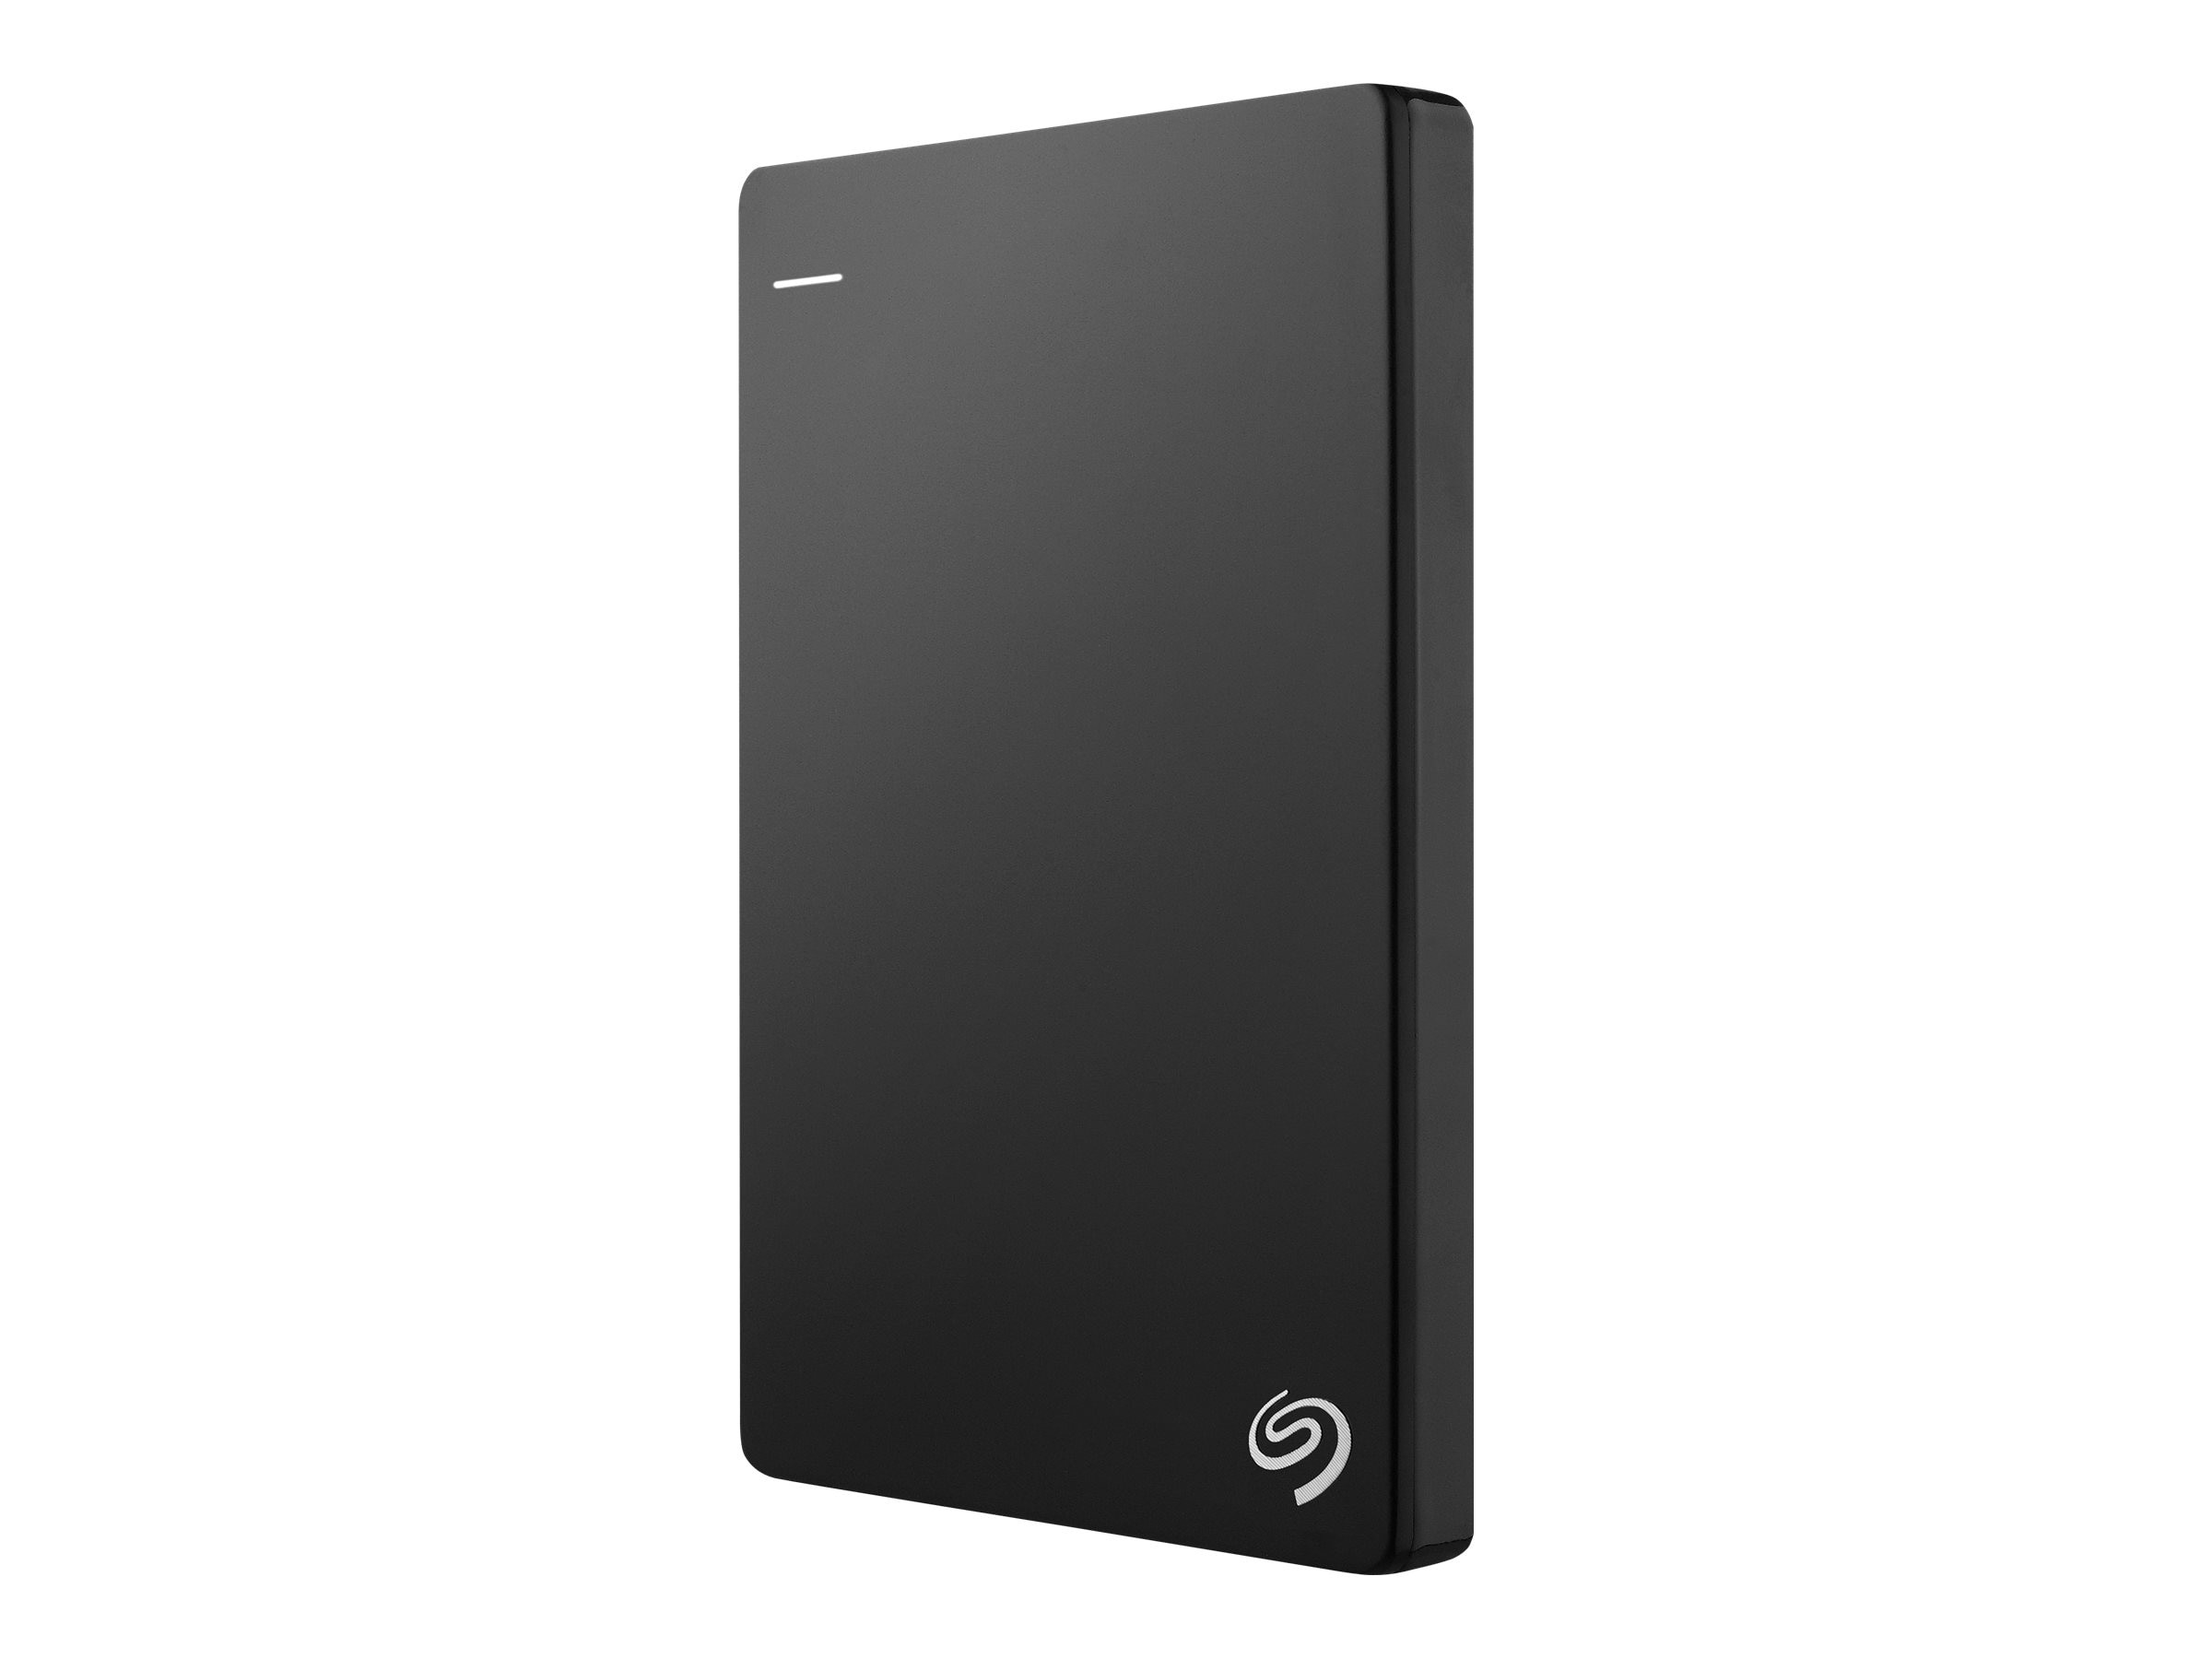 Seagate 4TB Backup Plus USB 3.0 Portable Hard Drive - Black, STDR4000100